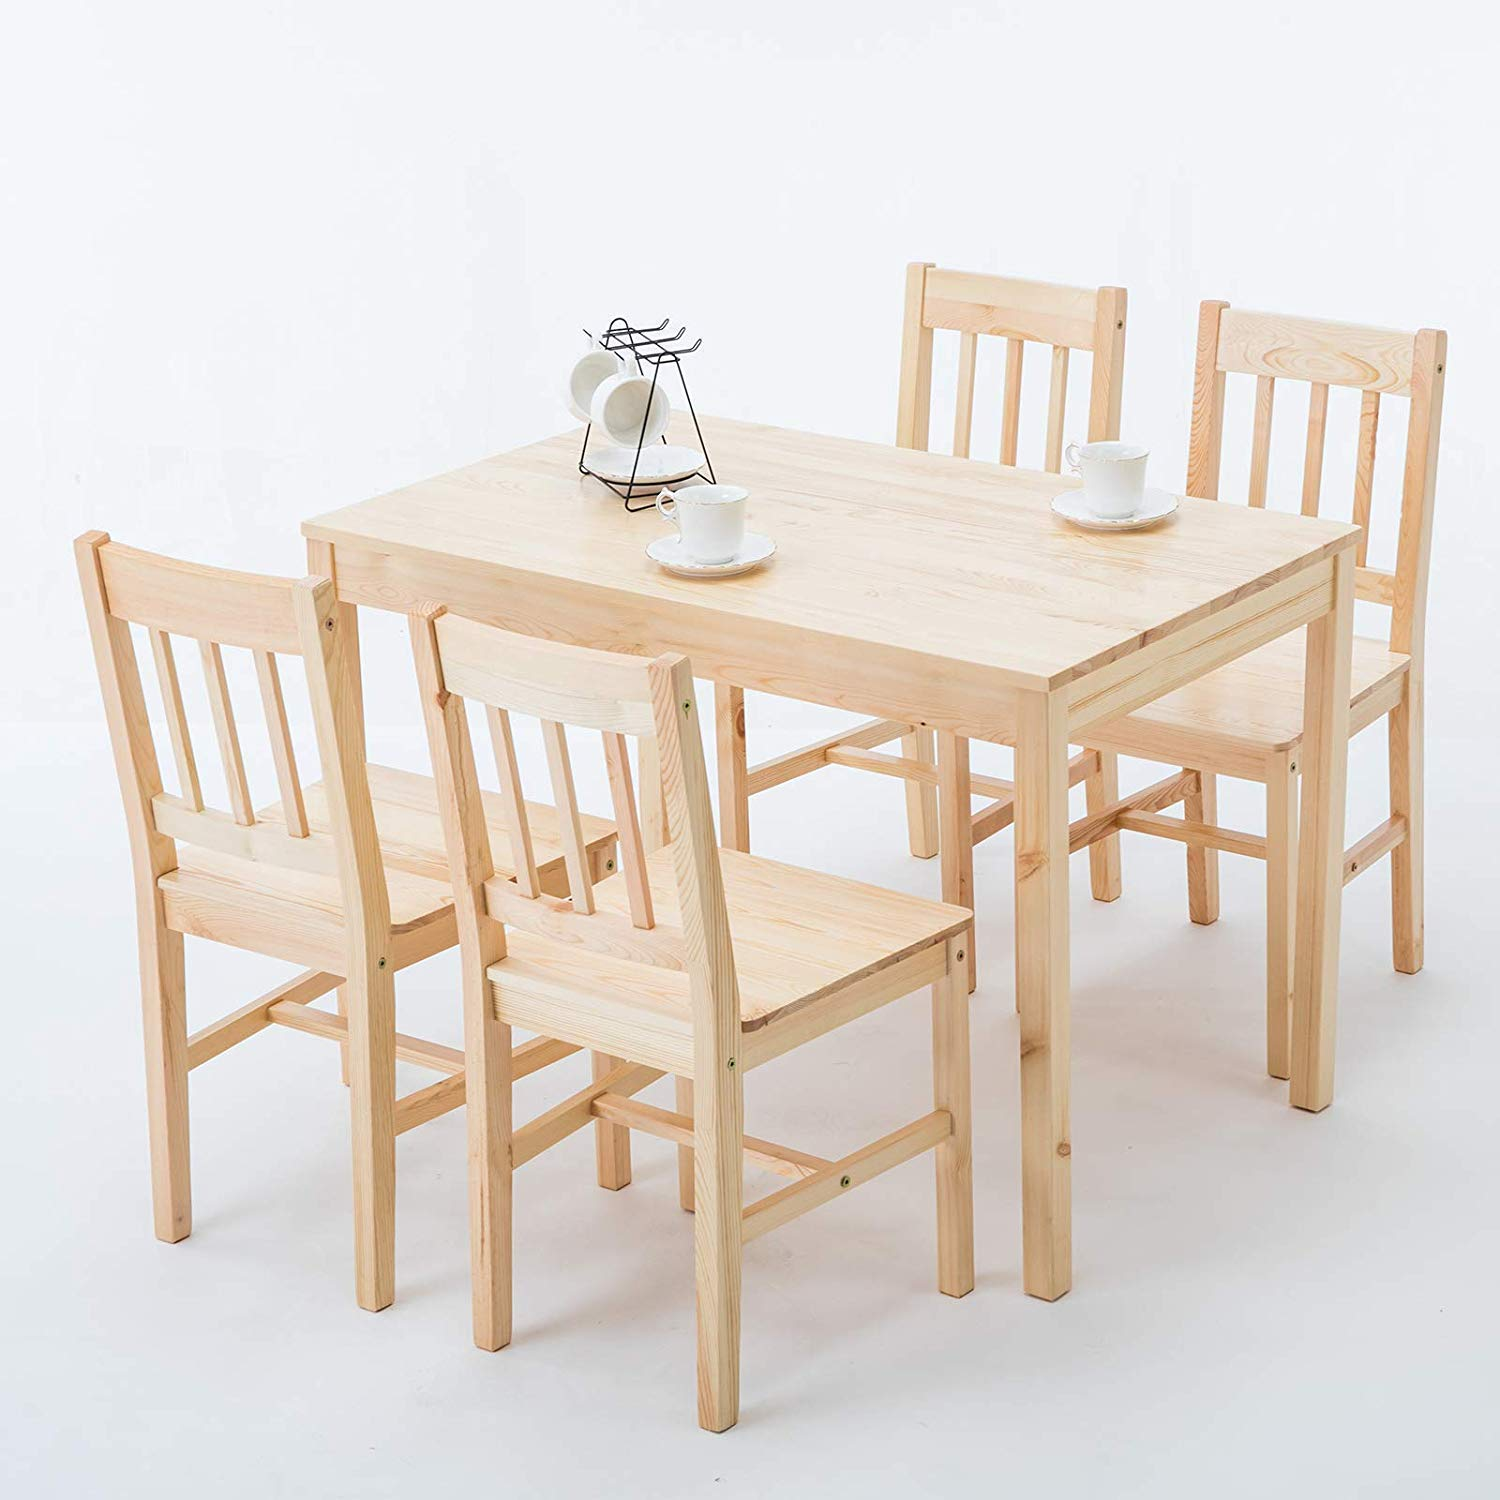 mecor 5 Piece Kitchen Dining Table Set, 4 Wood Chairs Dinette Table Kitchen Room Furniture (Burlywood) by mecor